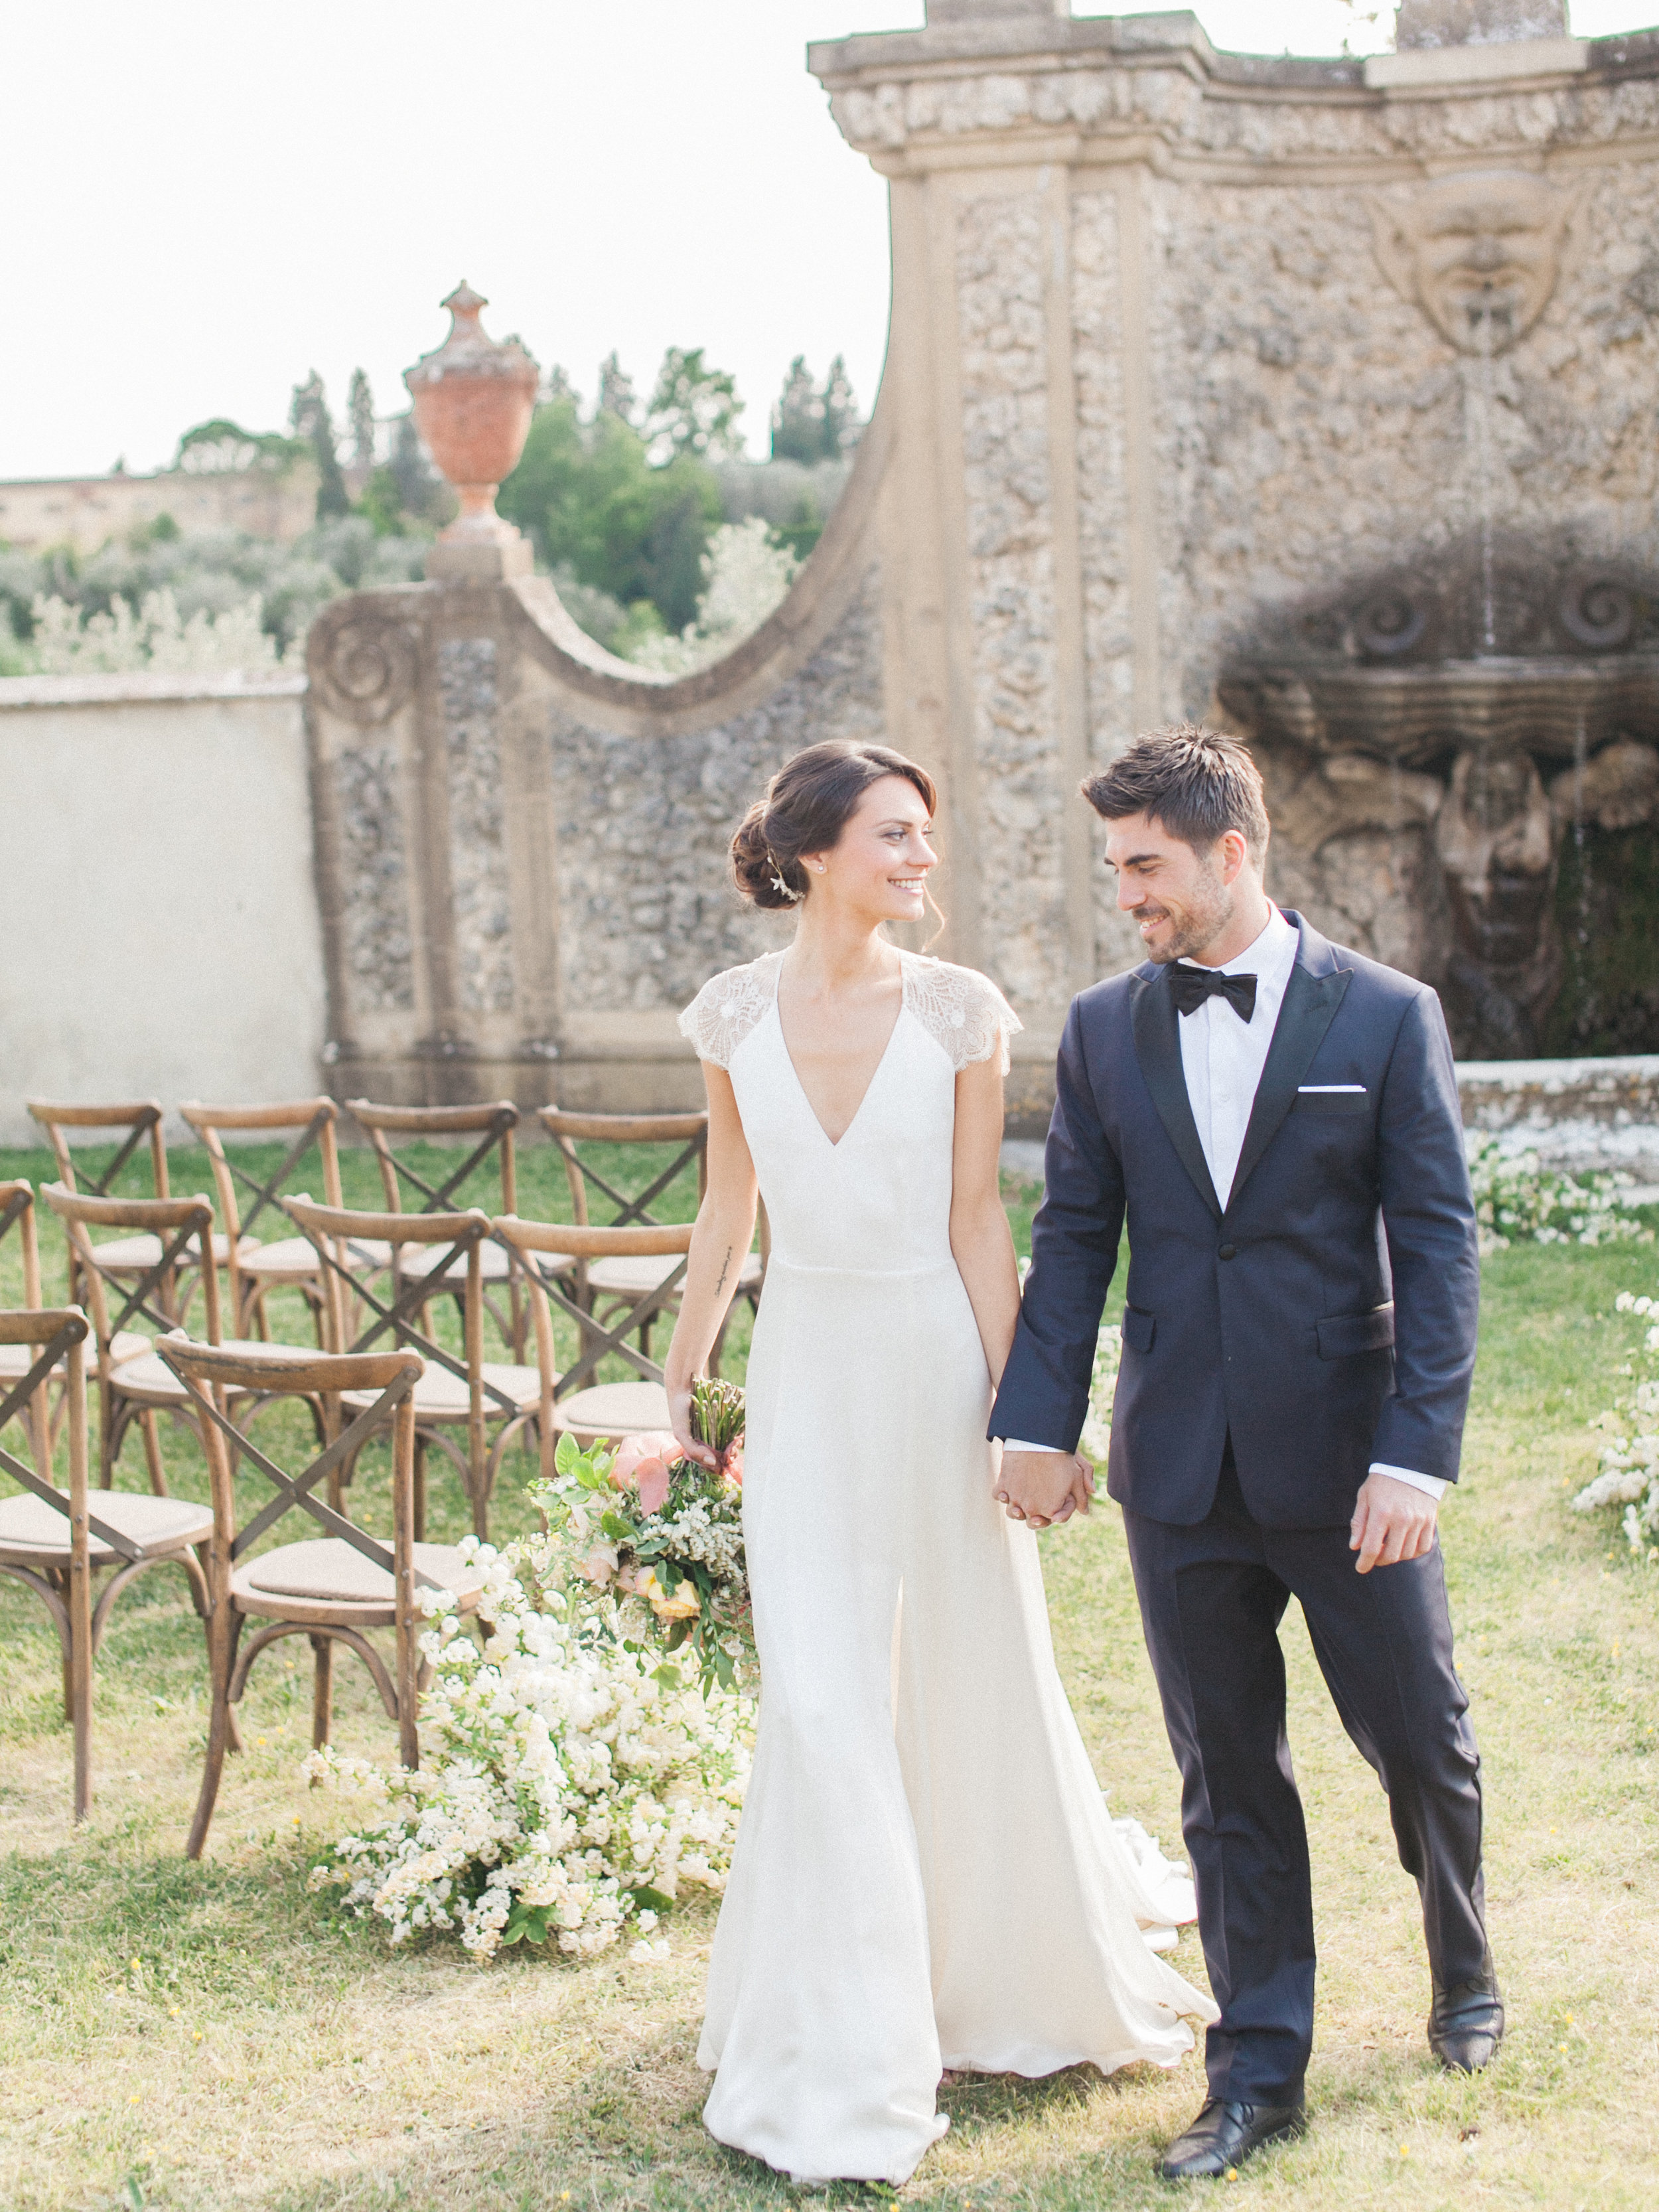 TuscanyRusticElopement-44.jpg